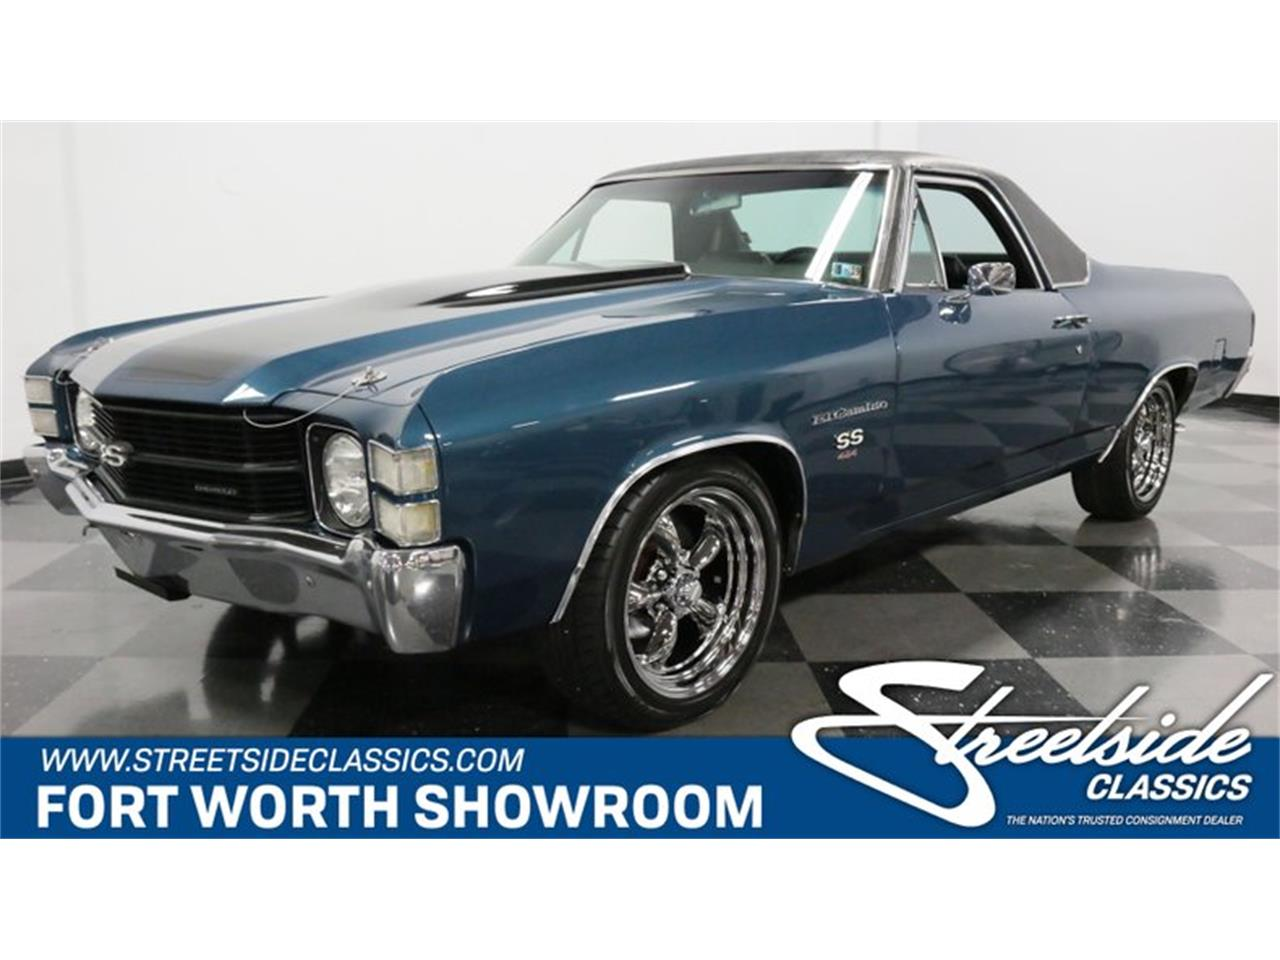 1971 Chevrolet El Camino for sale in Ft Worth, TX